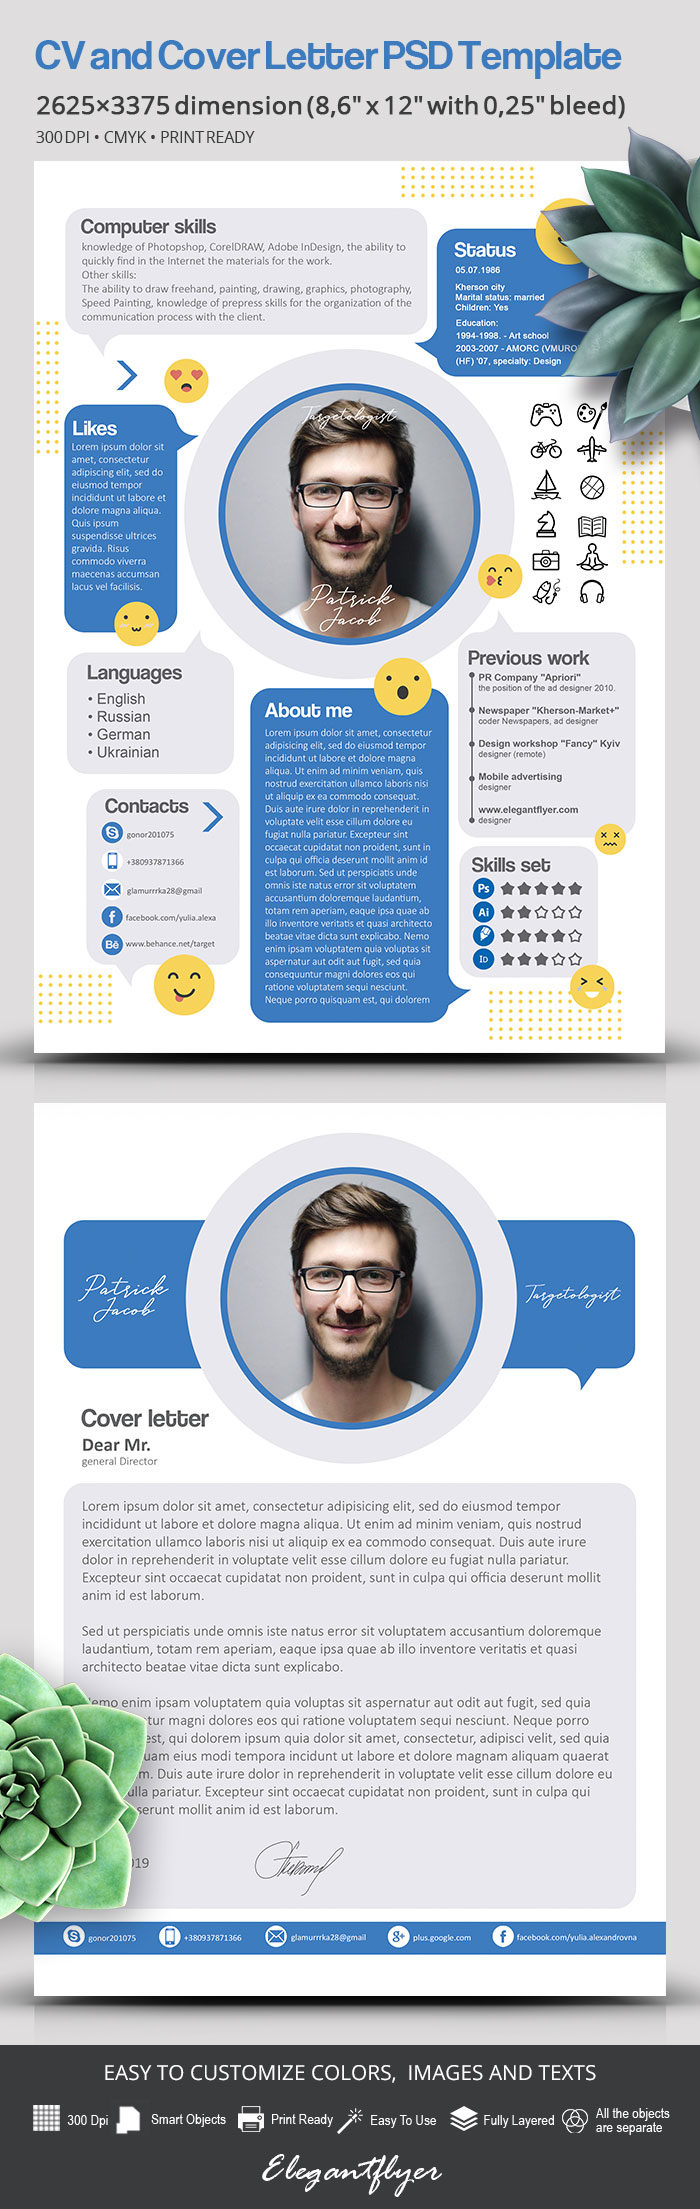 Free CV and Cover Letter PSD Template